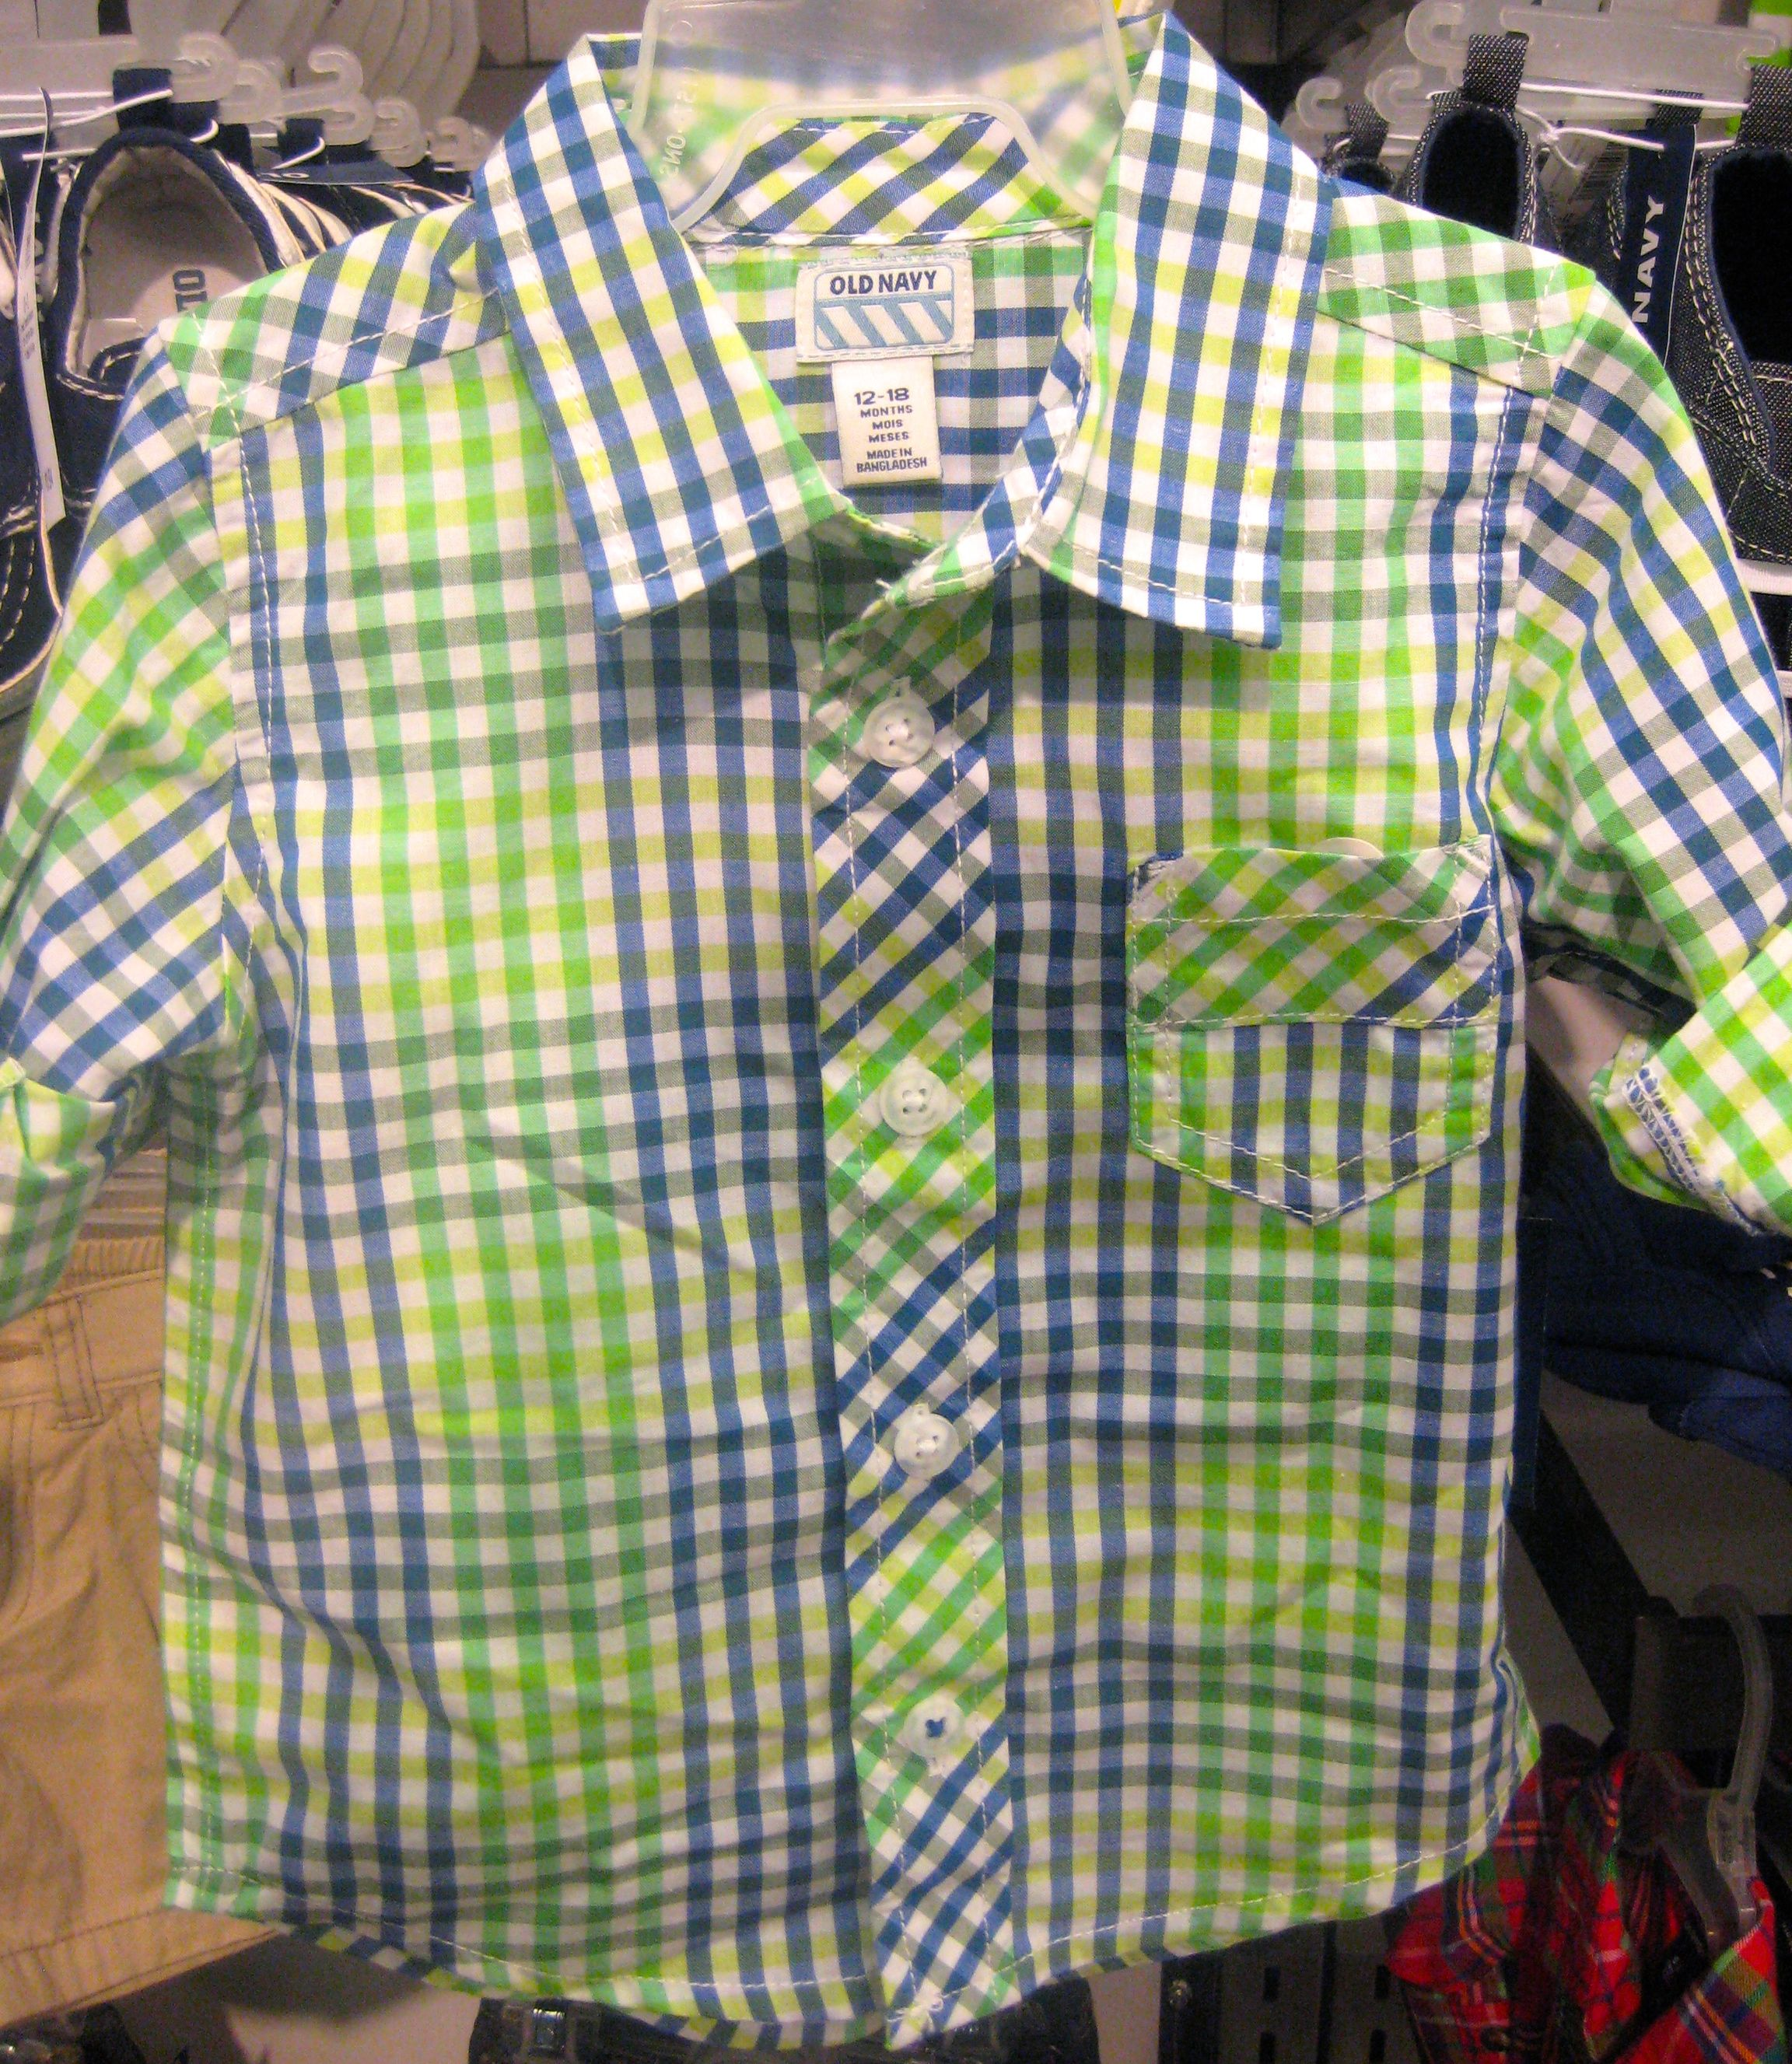 Flannel shirts at kohl's  Old Navy baby boy plaid shirt  burlingtonmall  Our Baby Boy